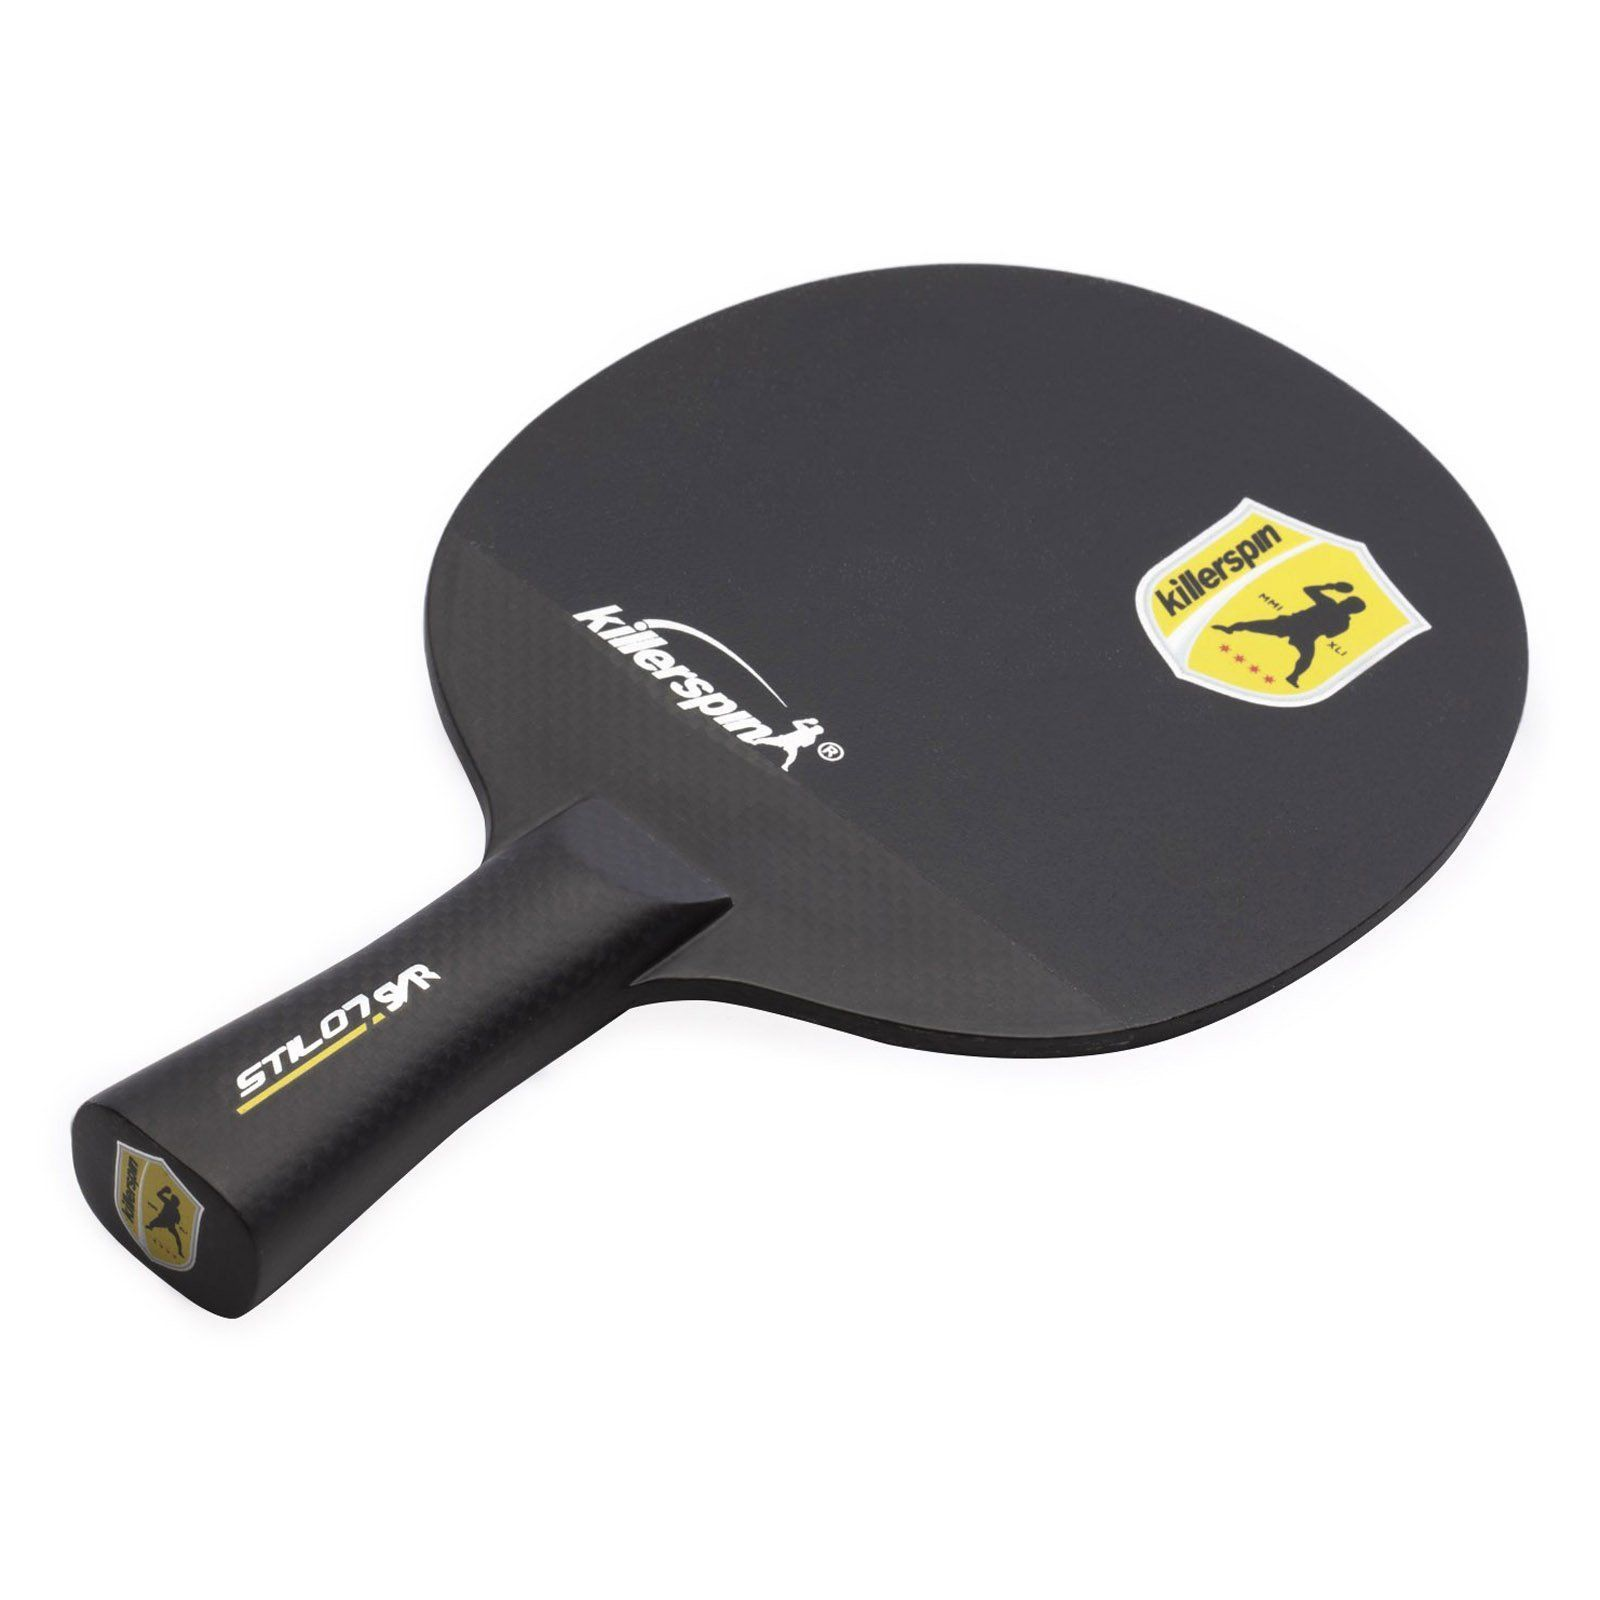 Spin 100 Stilo7 Svr Rtg Premium Table Tennis Racket And Custom